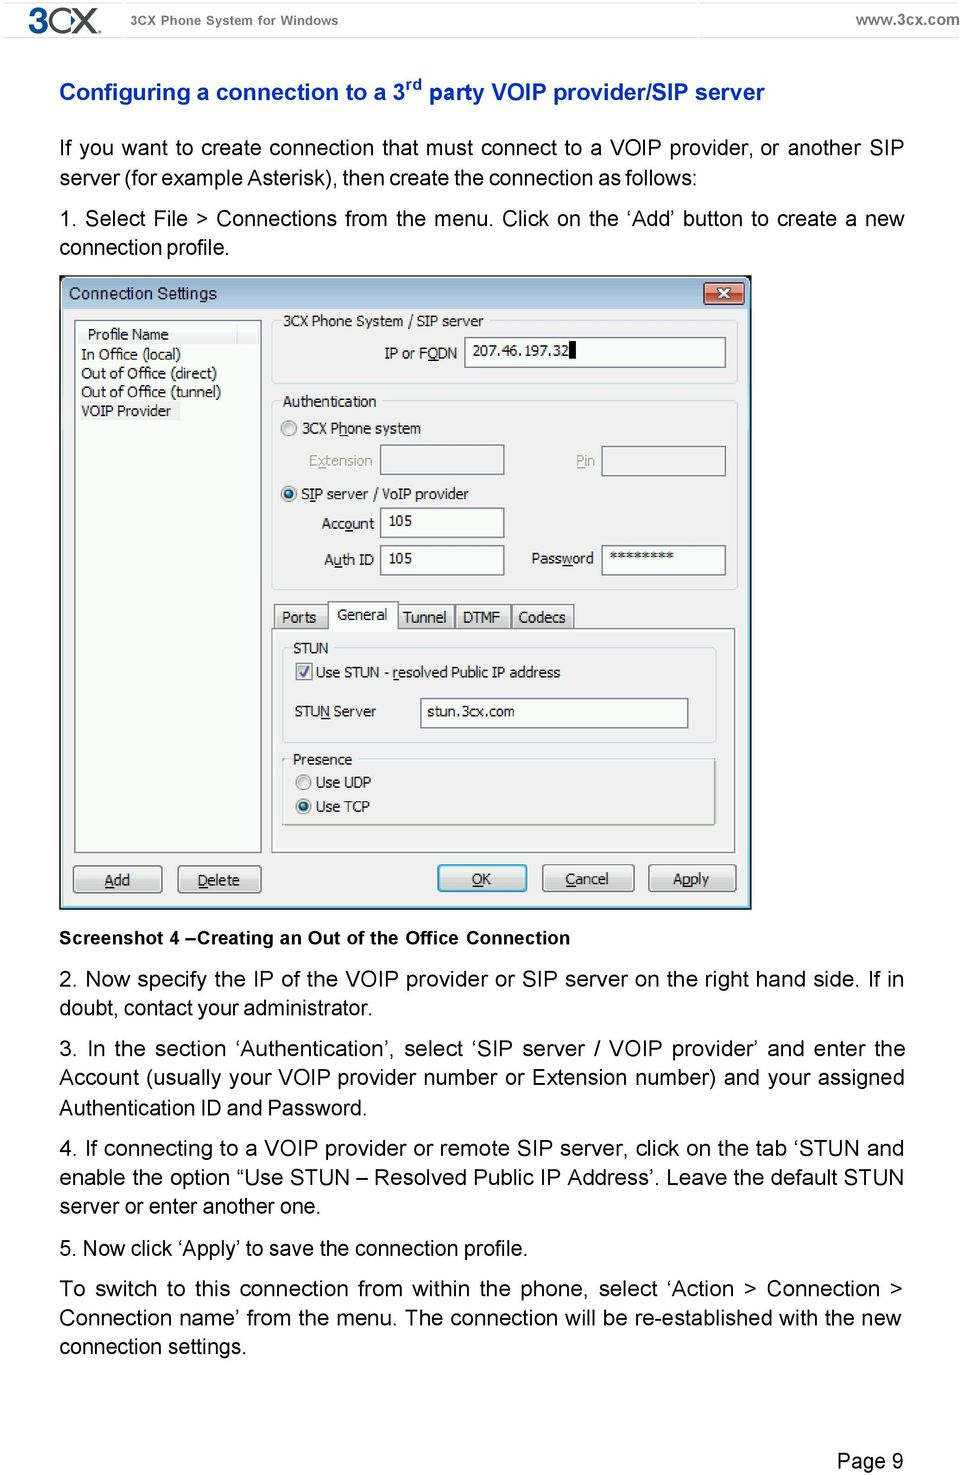 Now specify the IP of the VOIP provider or SIP server on the right hand side. If in doubt, contact your administrator. 3.